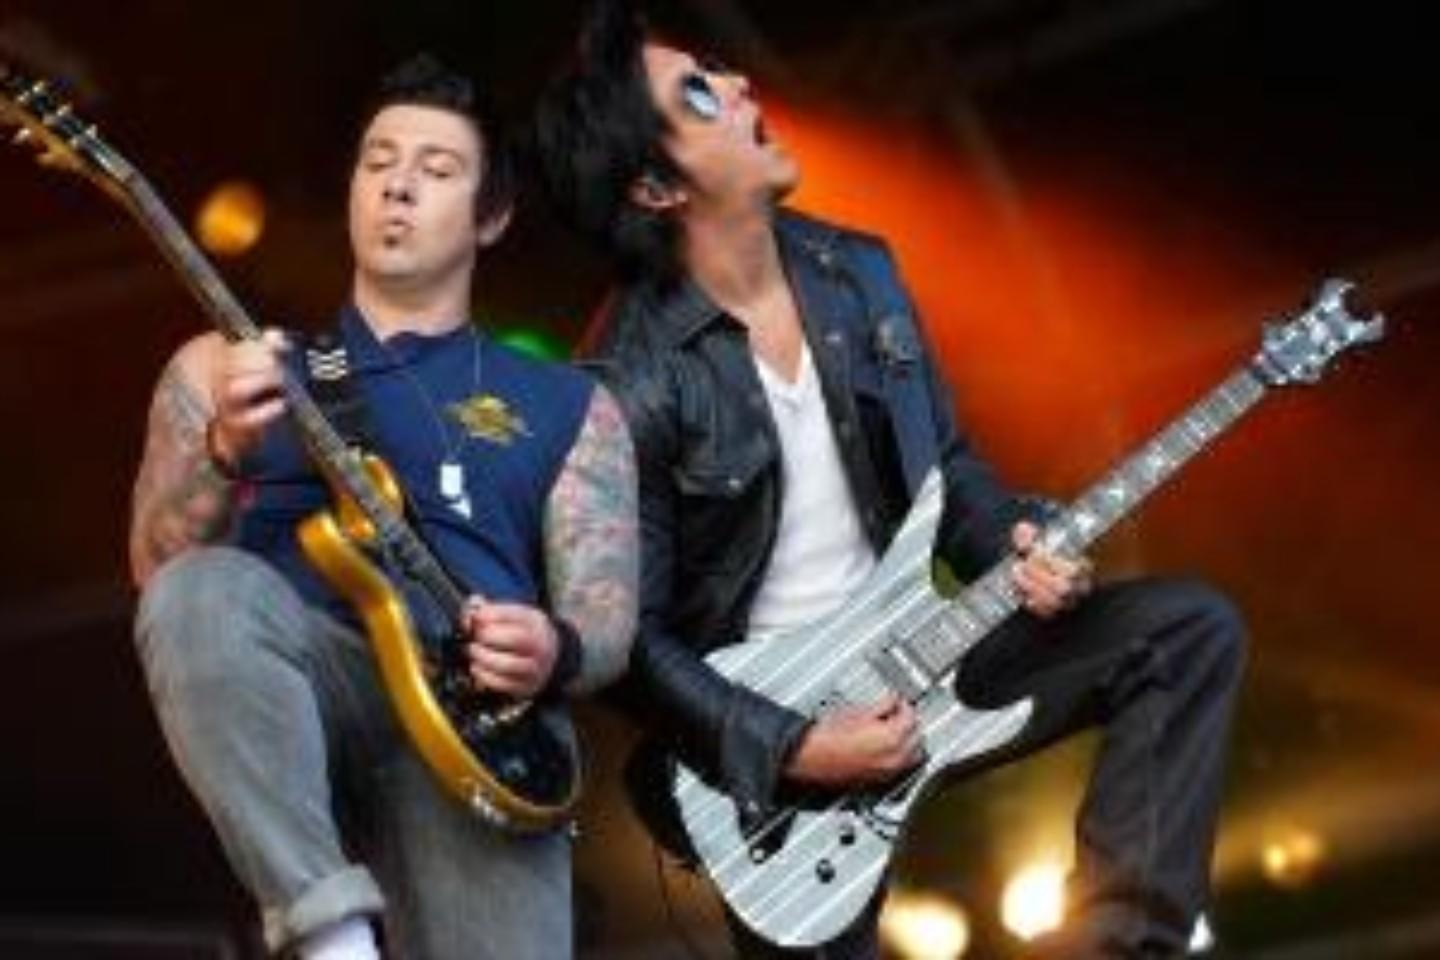 Avenged Sevenfold Tickets | Avenged Sevenfold Tour and Concert